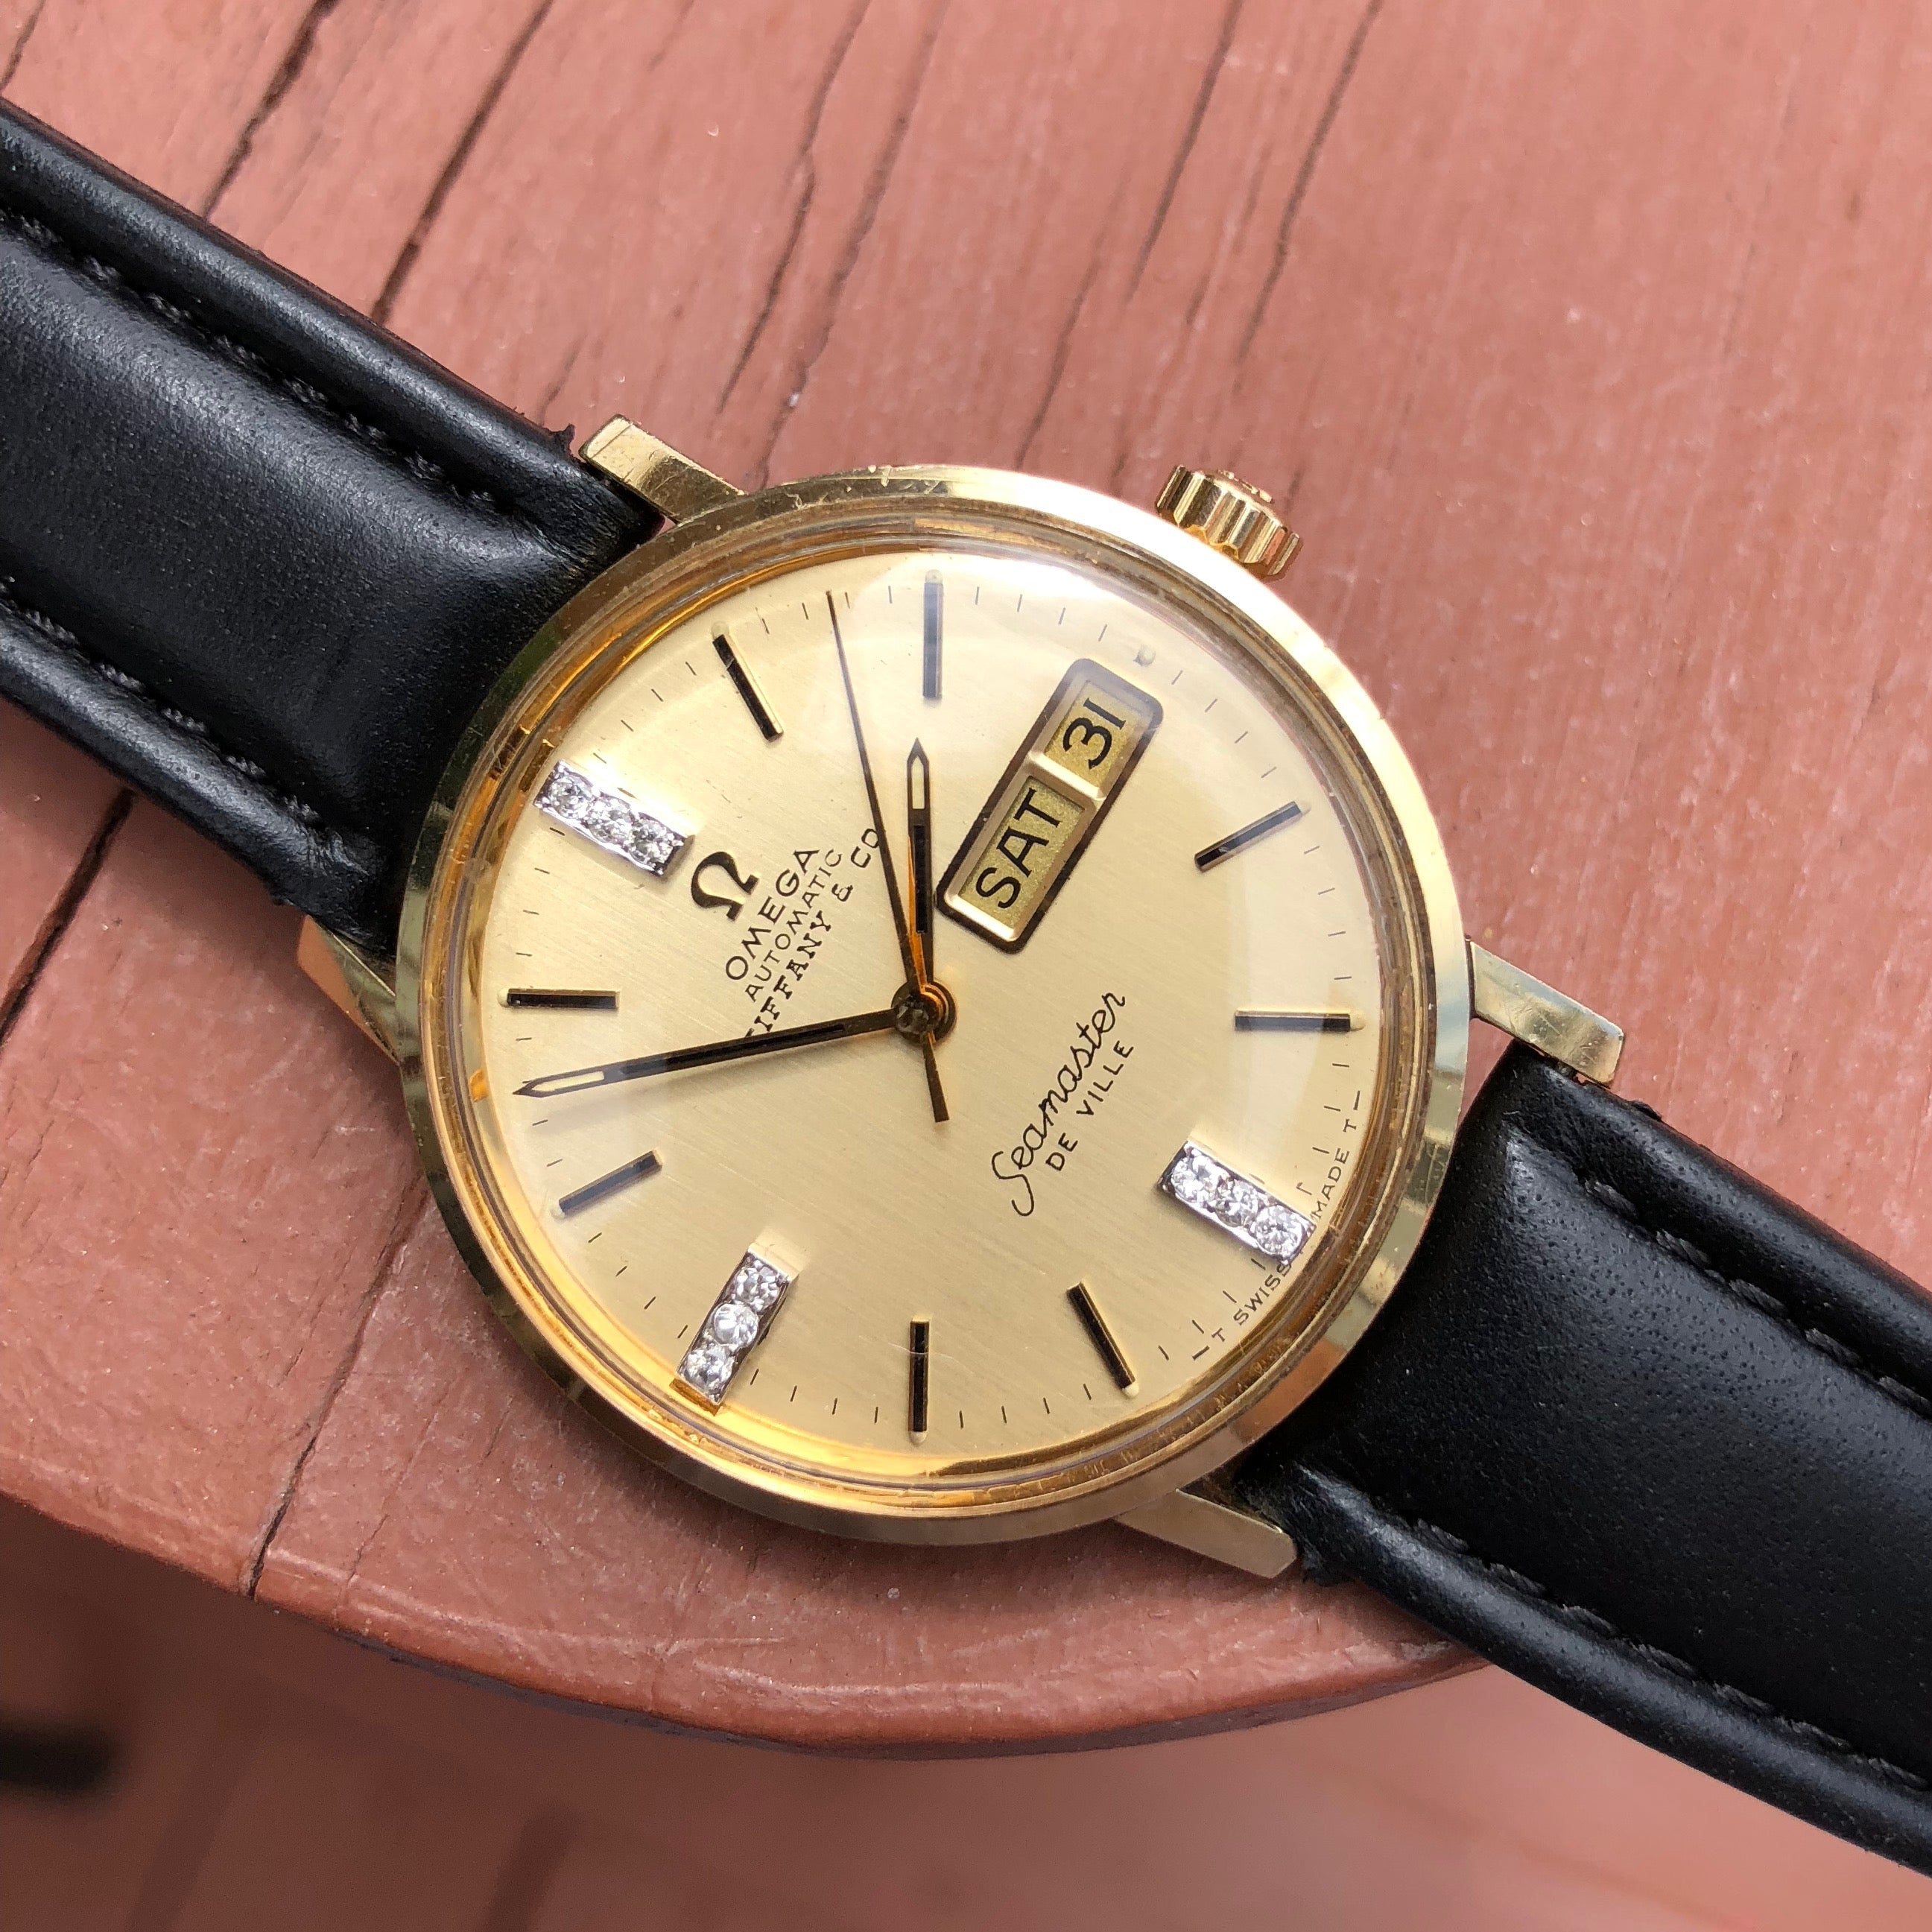 Vintage Omega Seamaster DeVille Day Date Tiffany & Co. 14K Gold Diamond Watch - Hashtag Watch Company